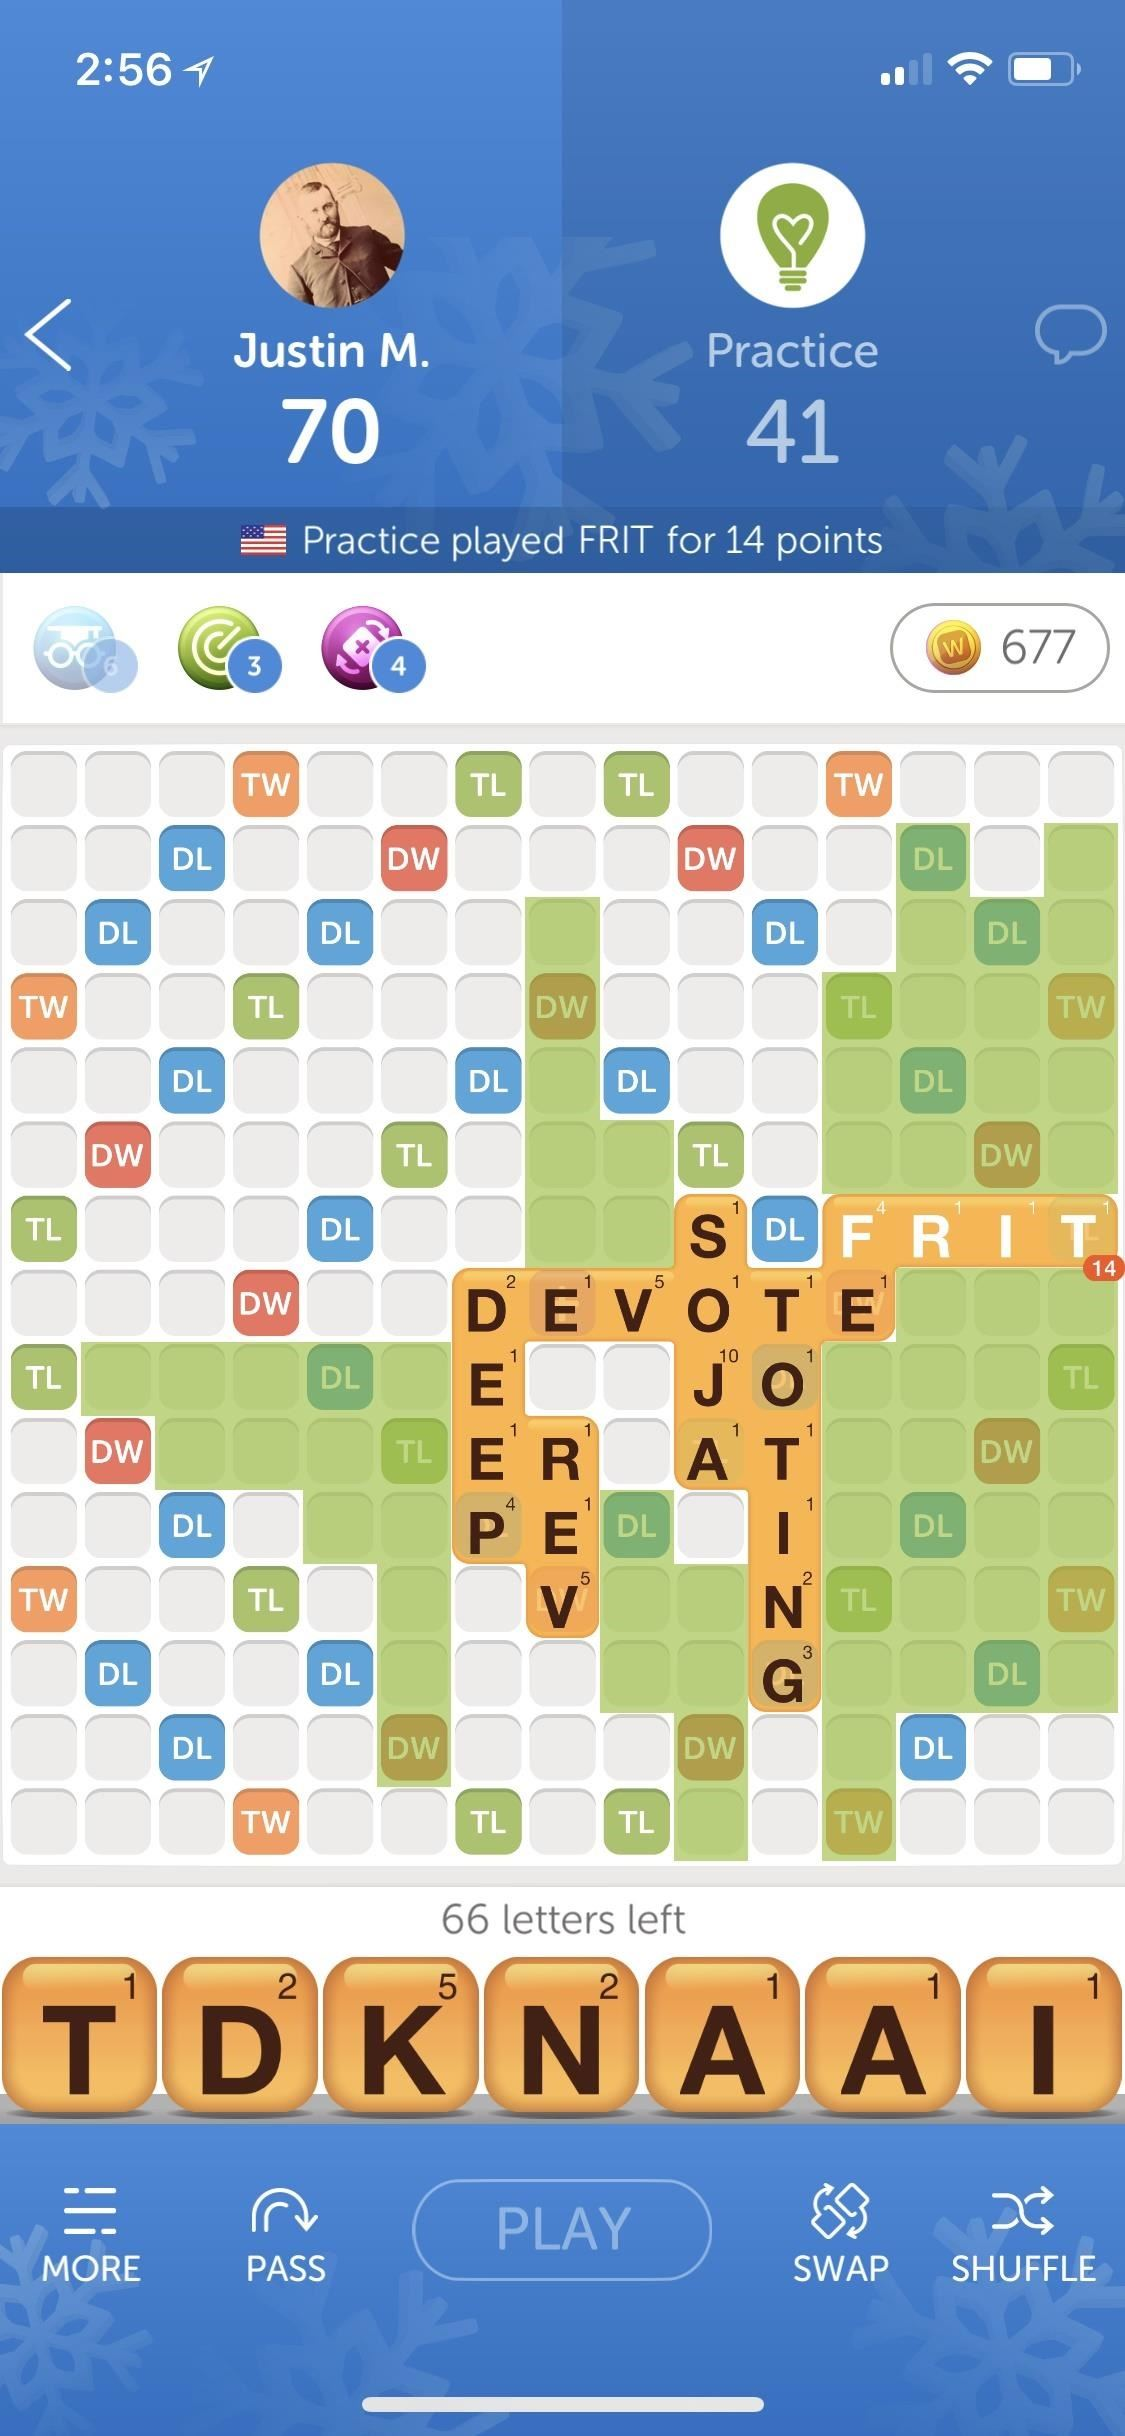 How to Use Word Radars to Score Big in Words with Friends